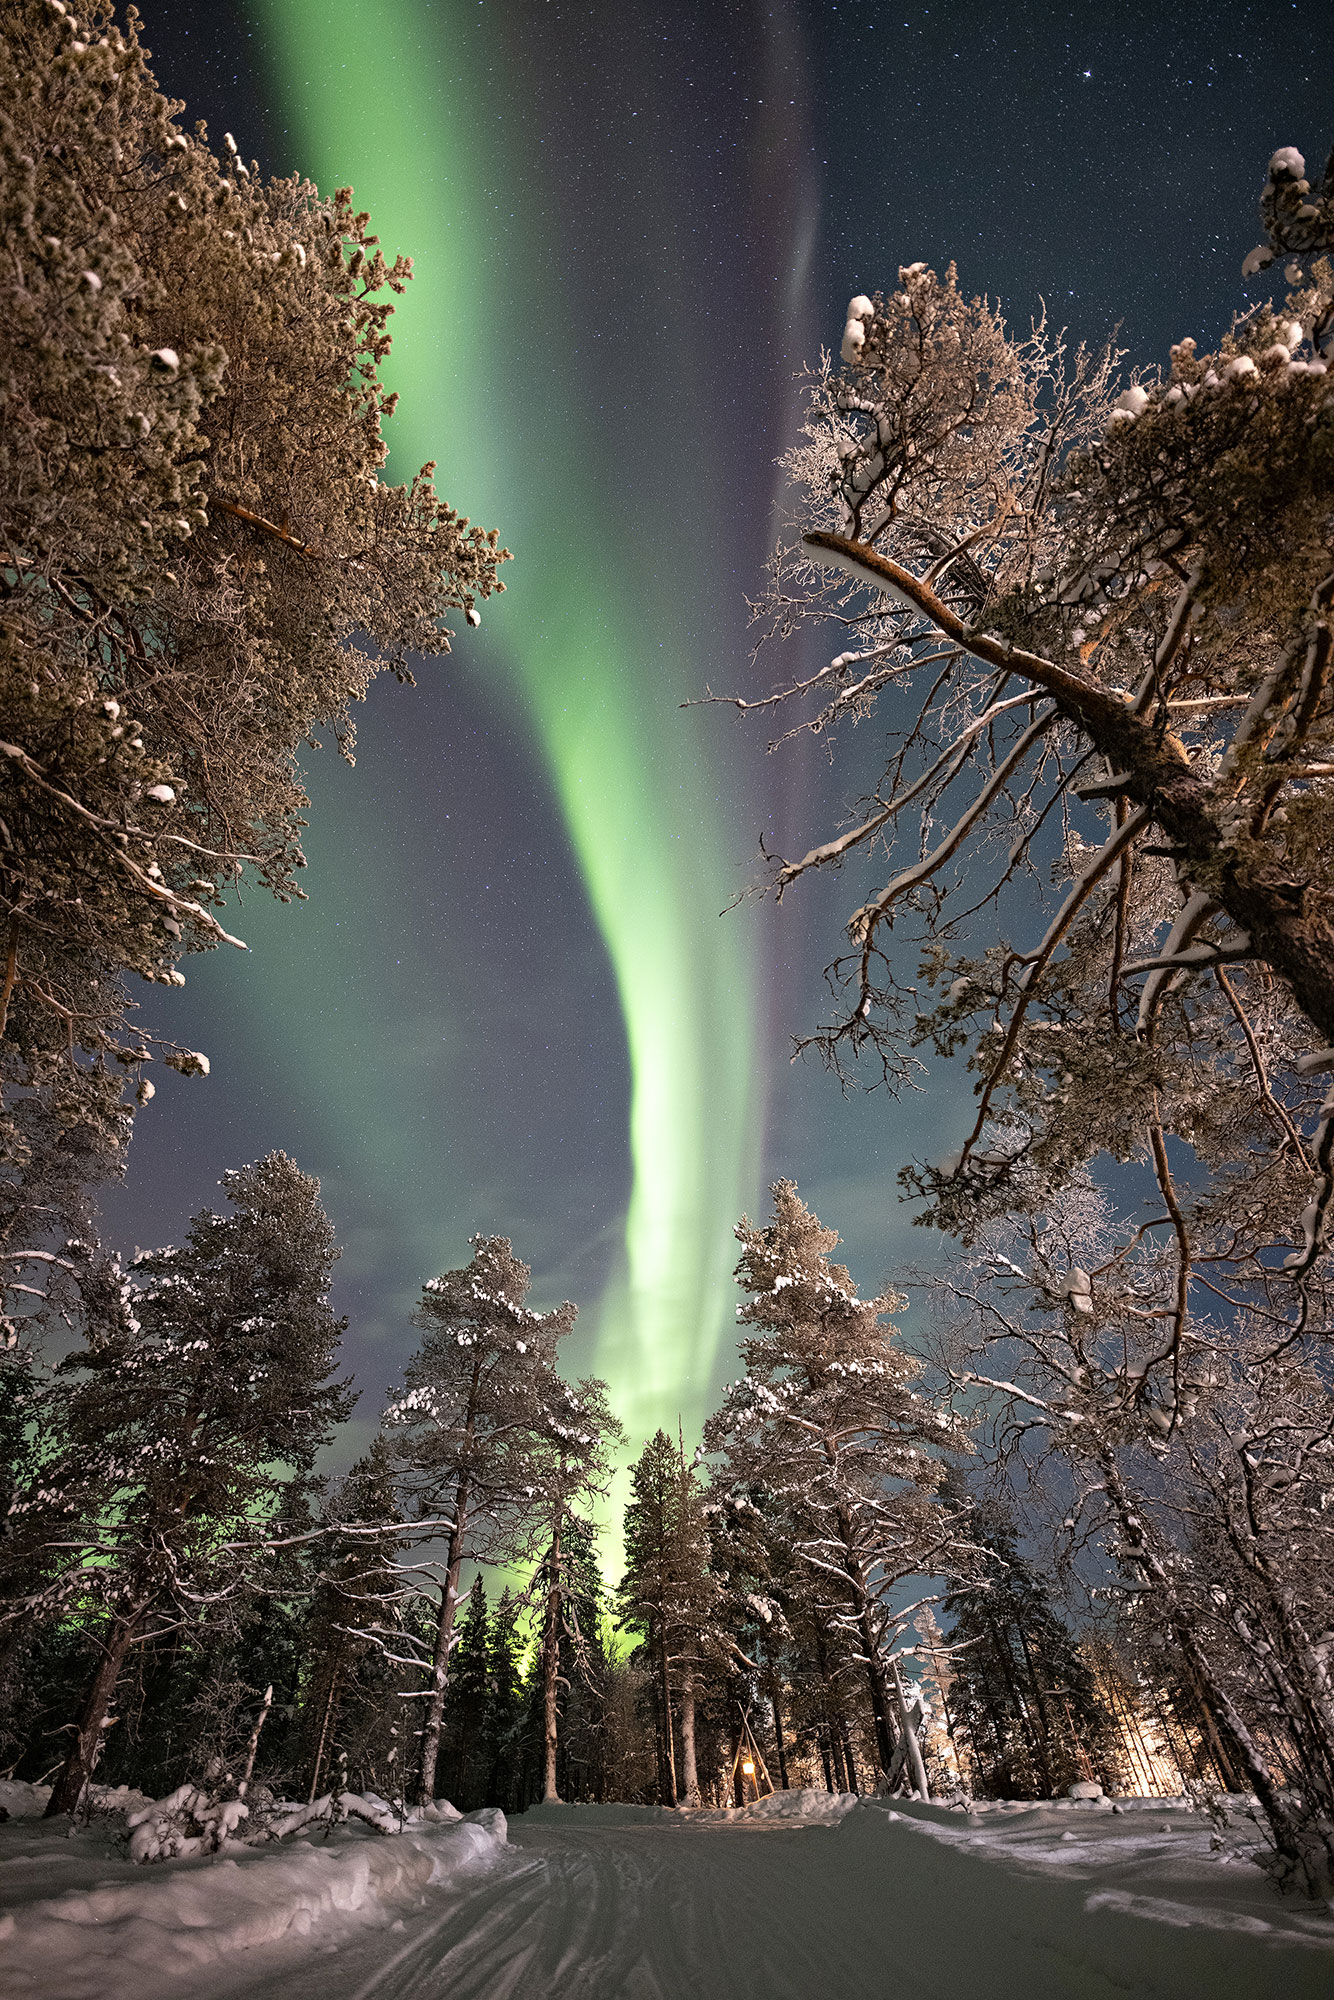 Choose your way to enjoy the Aurora Borealis: sitting back in a warm car or sleigh or walking in snowshoes.